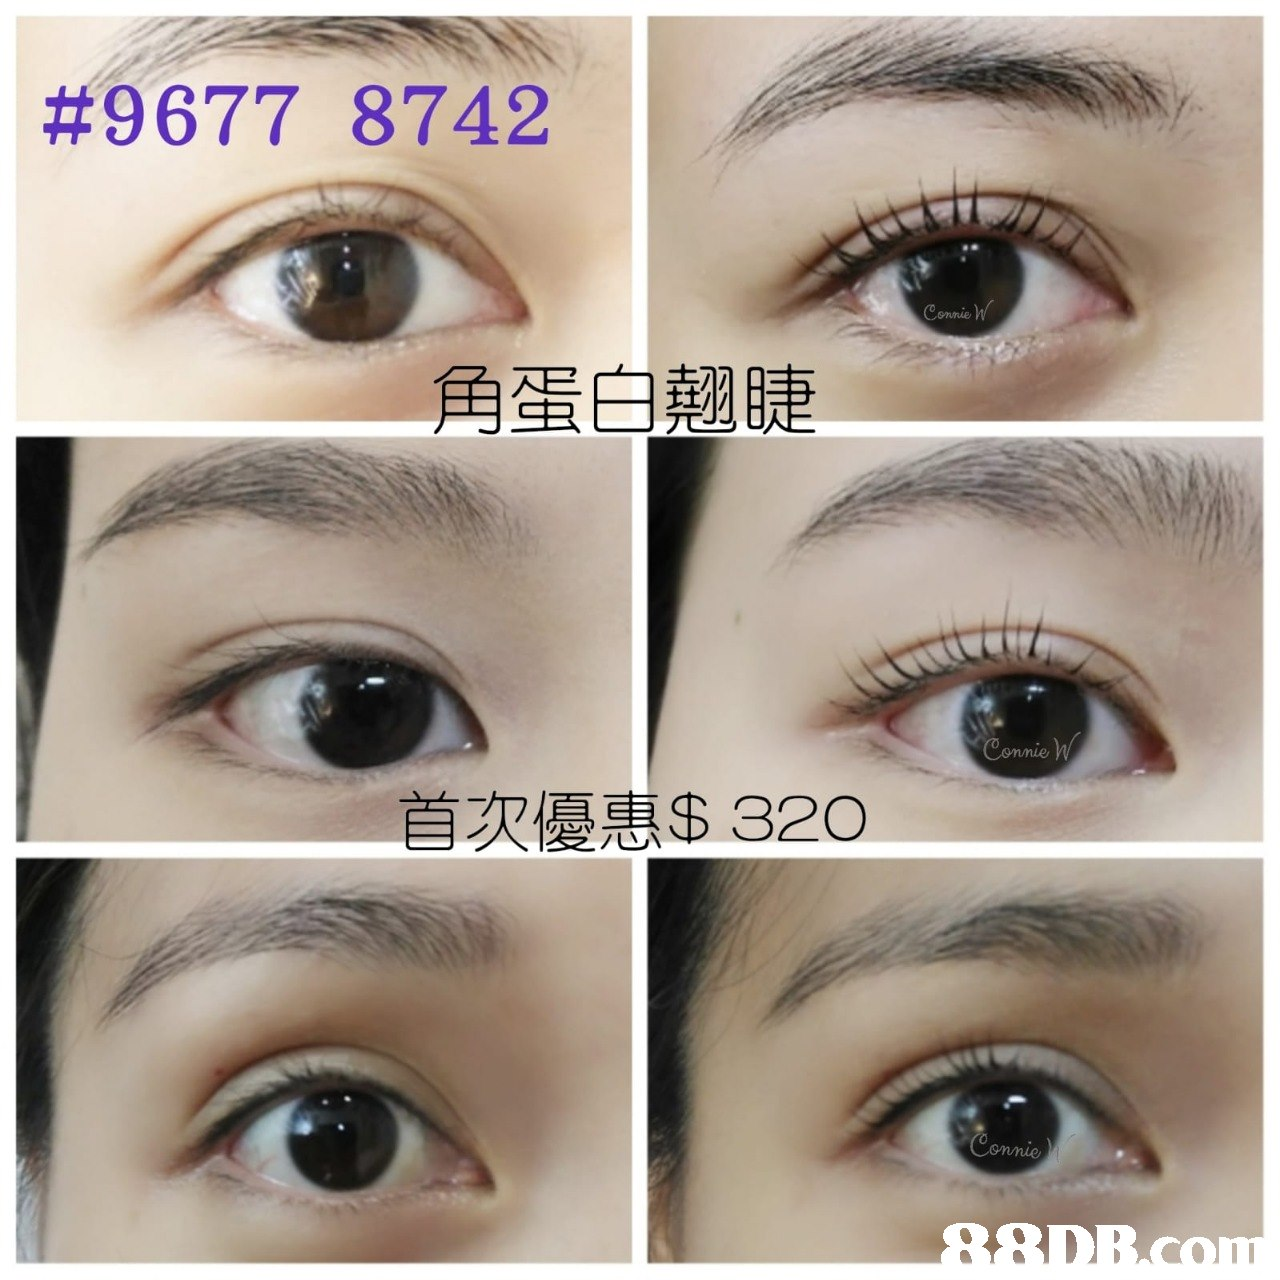 #9677 8742 角蛋白翹睫 首次優惠$ 320  eyebrow,eyelash,eye,cosmetics,eye shadow